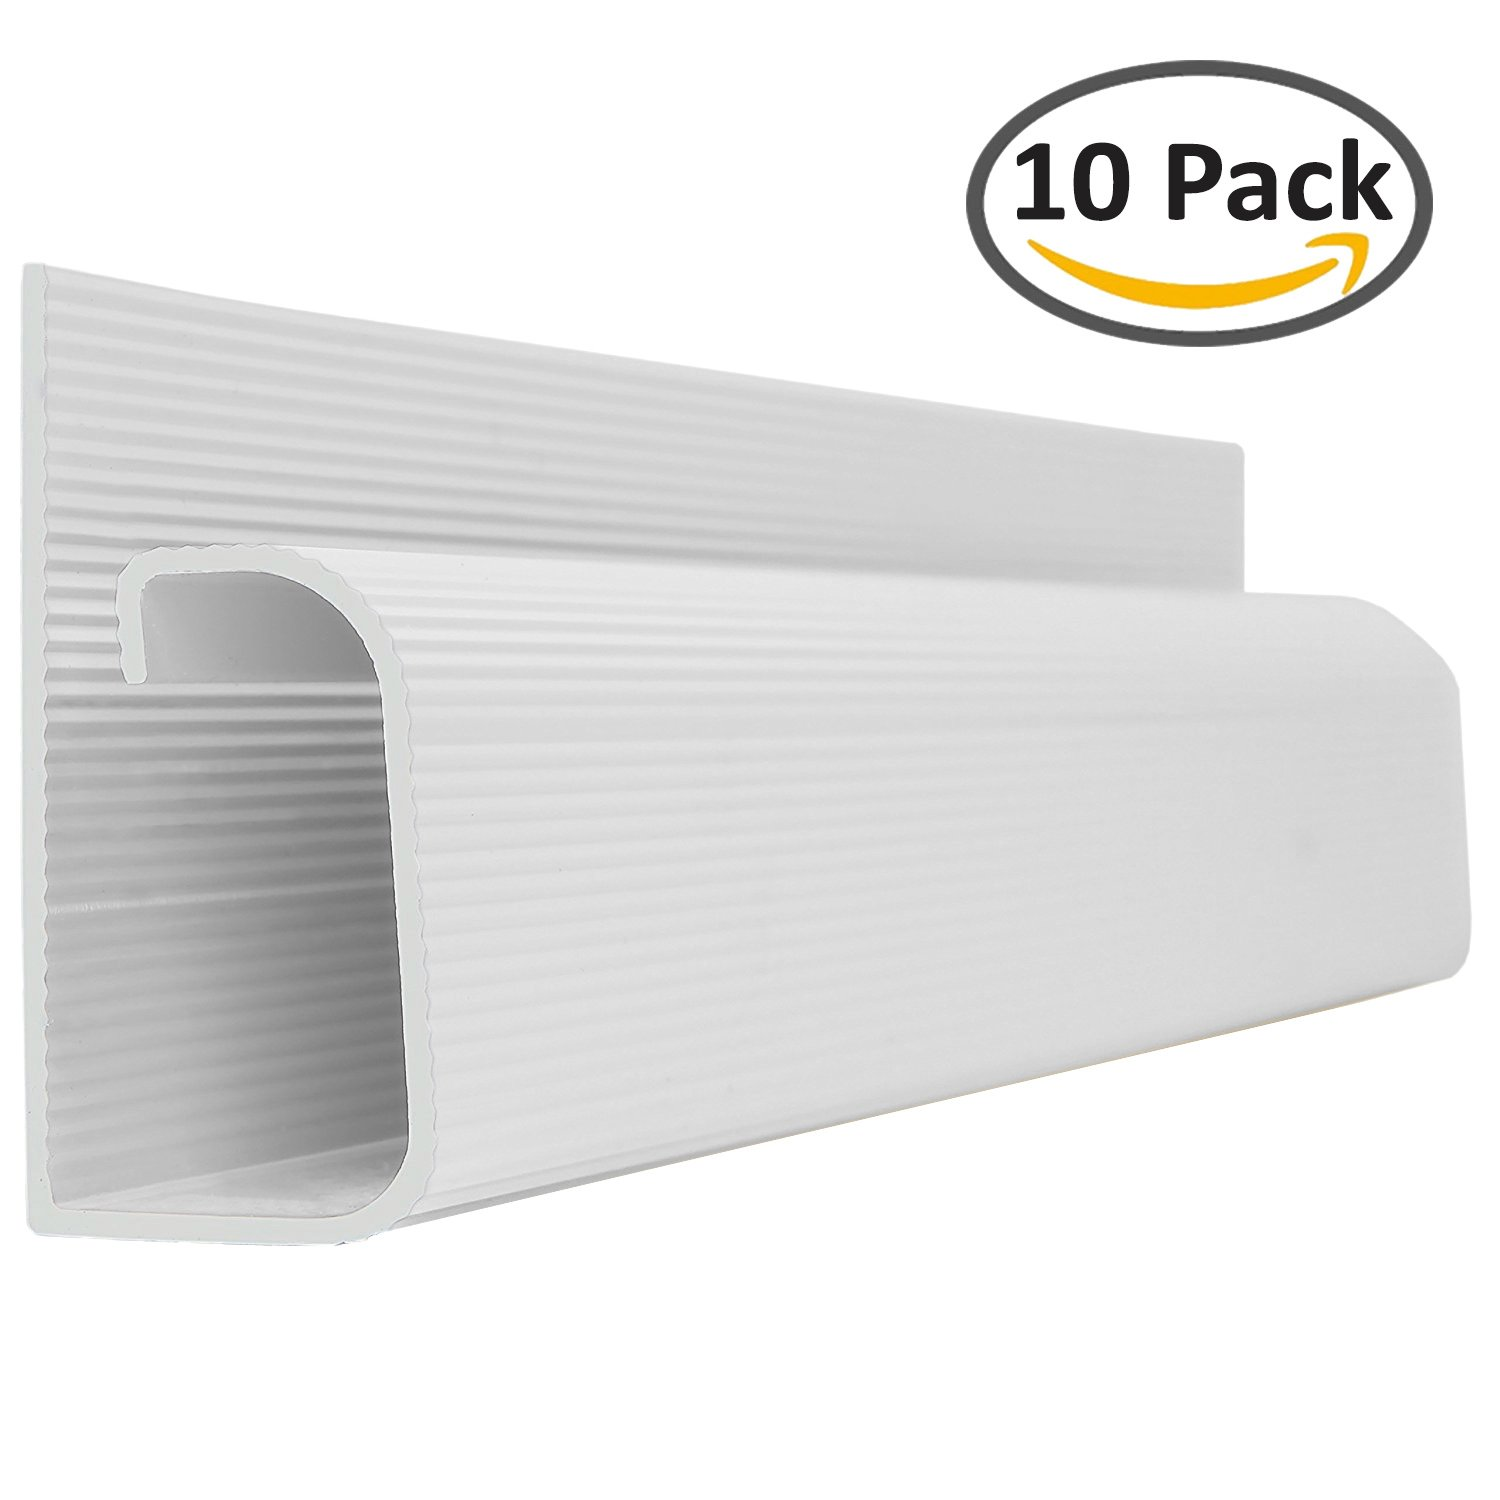 J Channel Cable Raceway - White - 48'' Length - 10 Pack